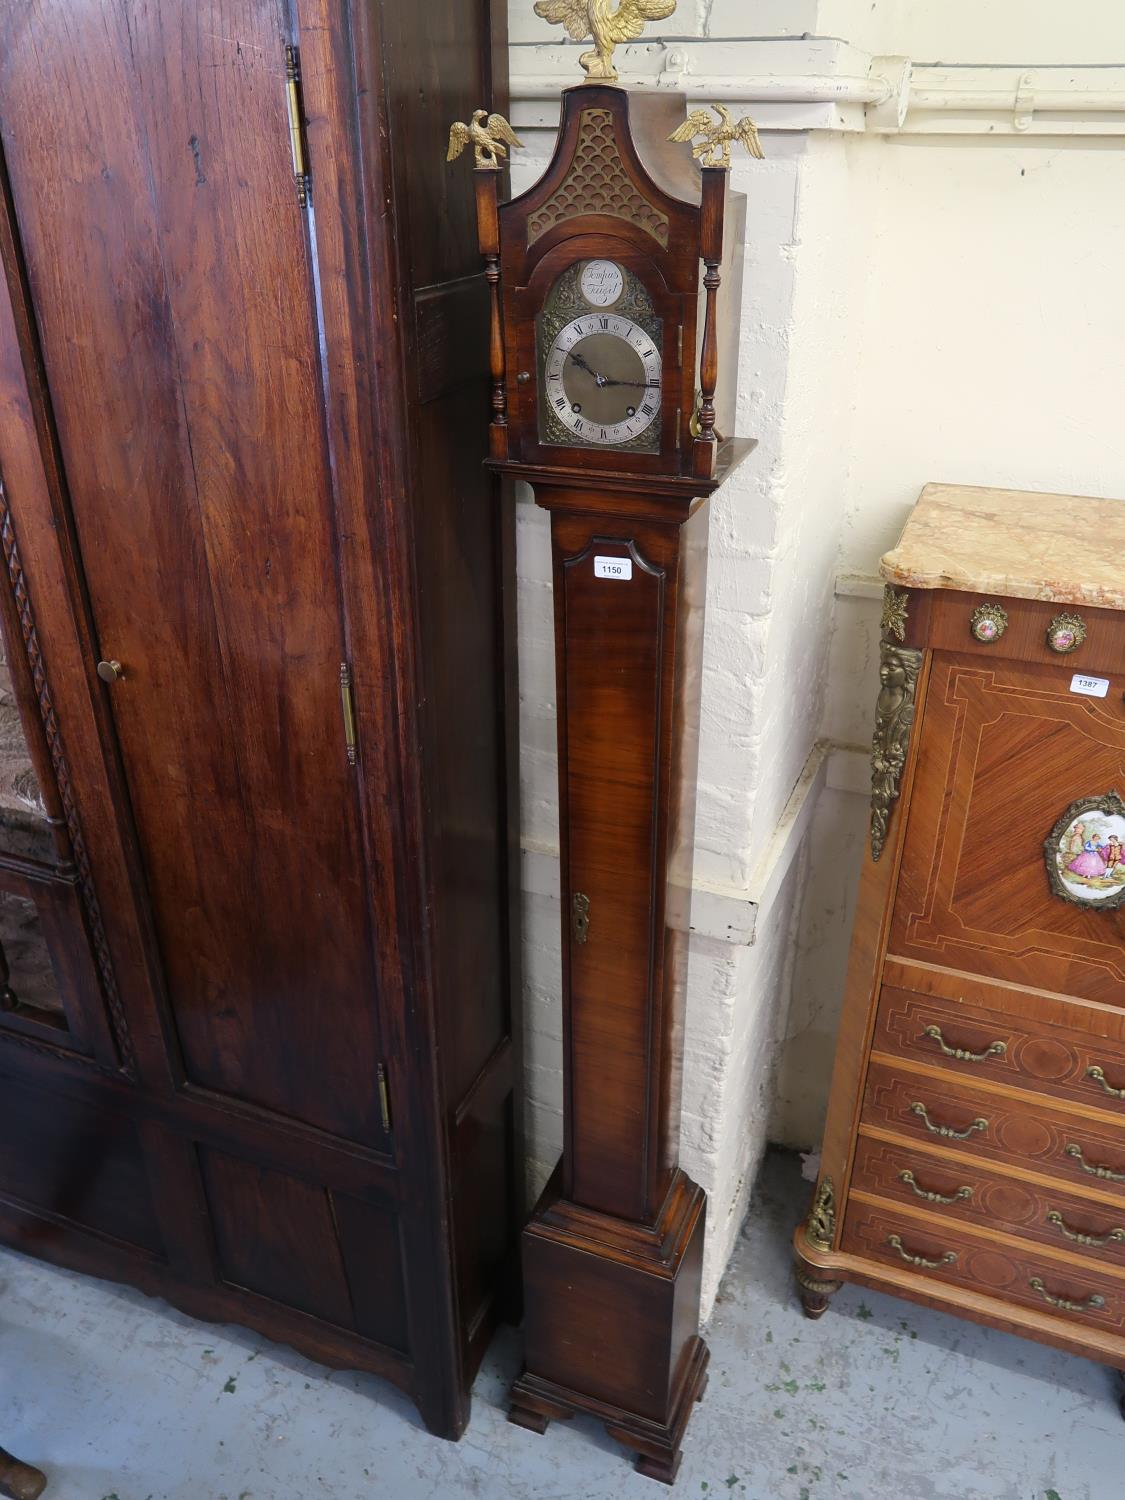 Unusual mid 20th Century walnut longcase clock of narrow proportions in 18th Century style, the